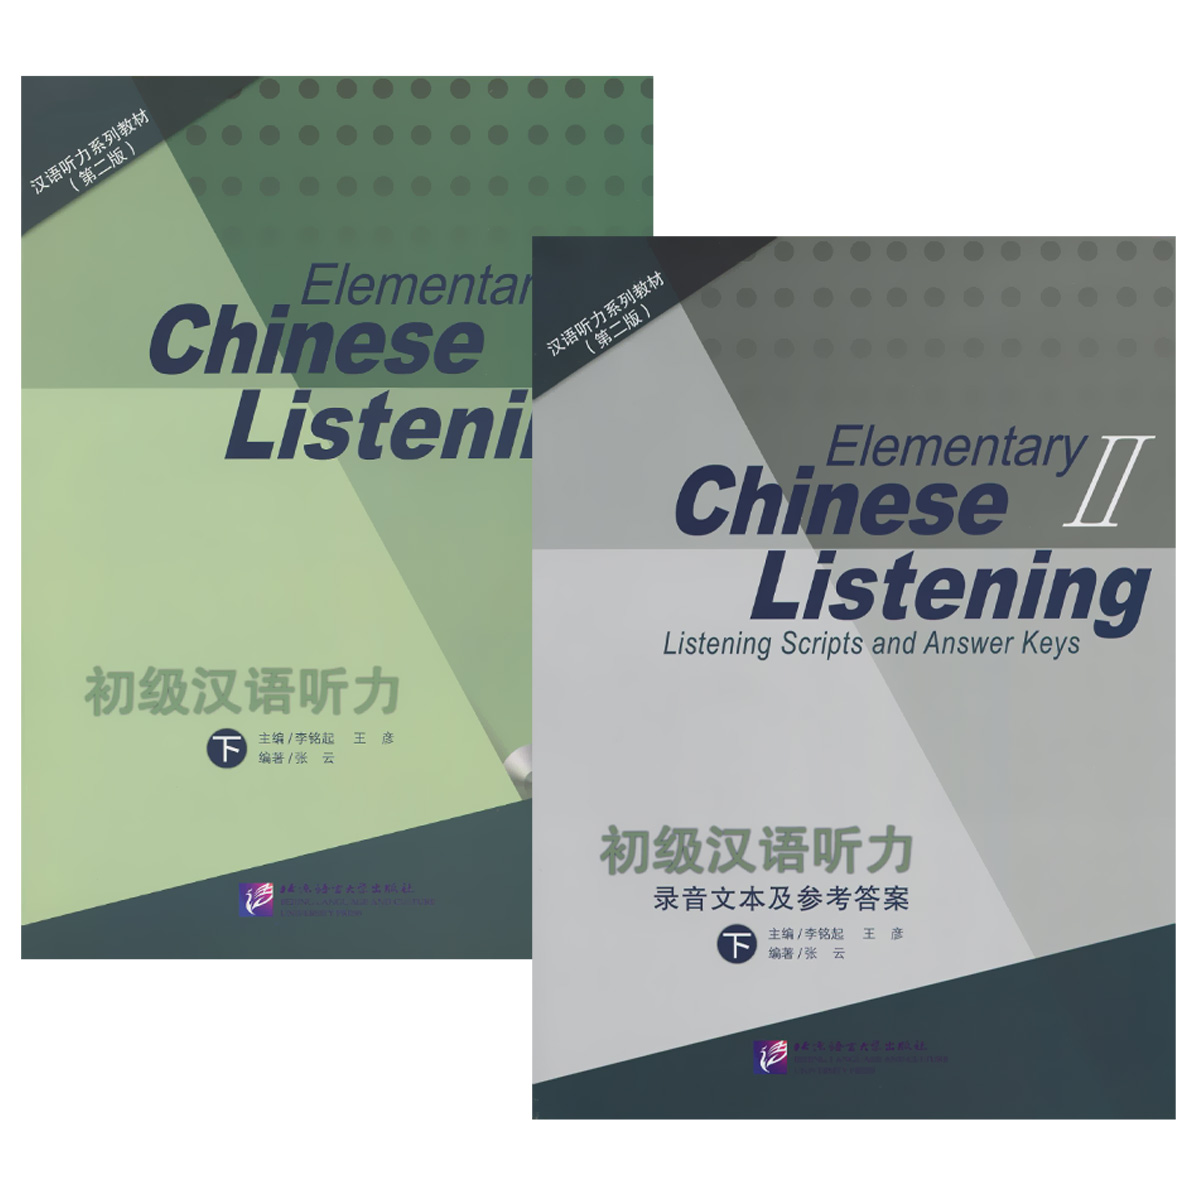 Elementary Chinese Listening 2 johnson after three centuries – new light on texts and contexts